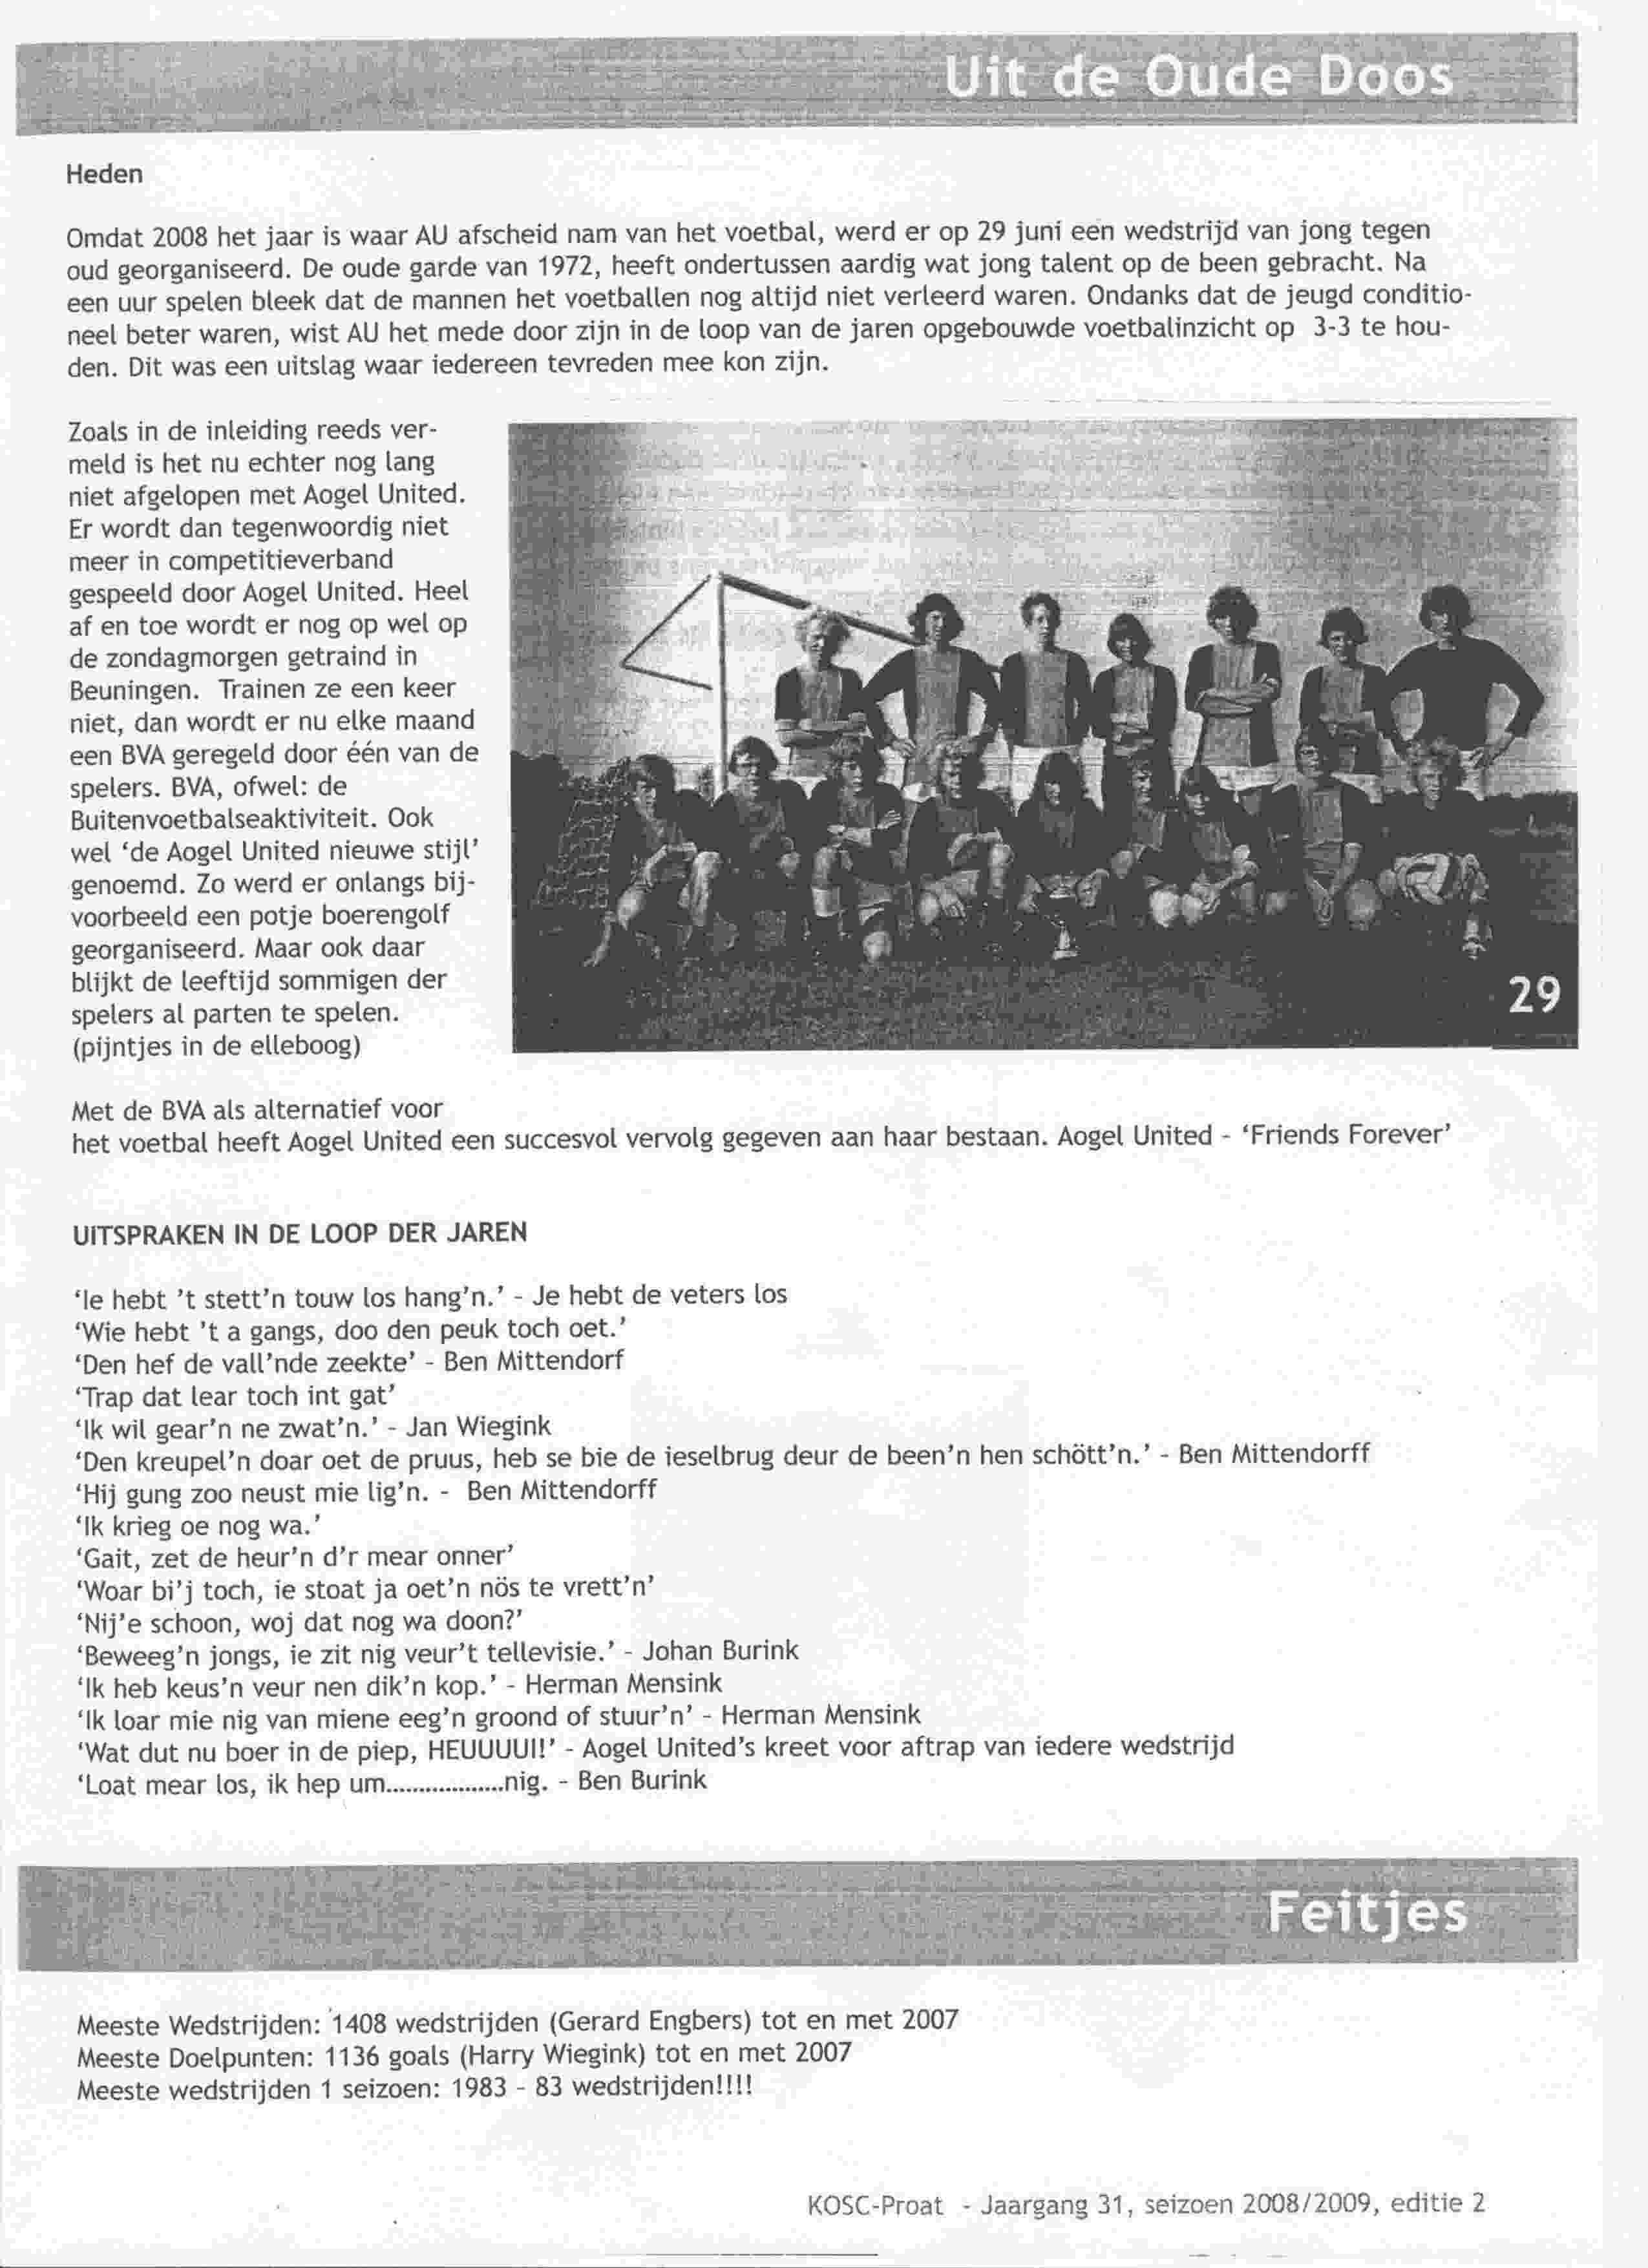 Artikel over Aogel United in KOSC-proat op 2009-01-01